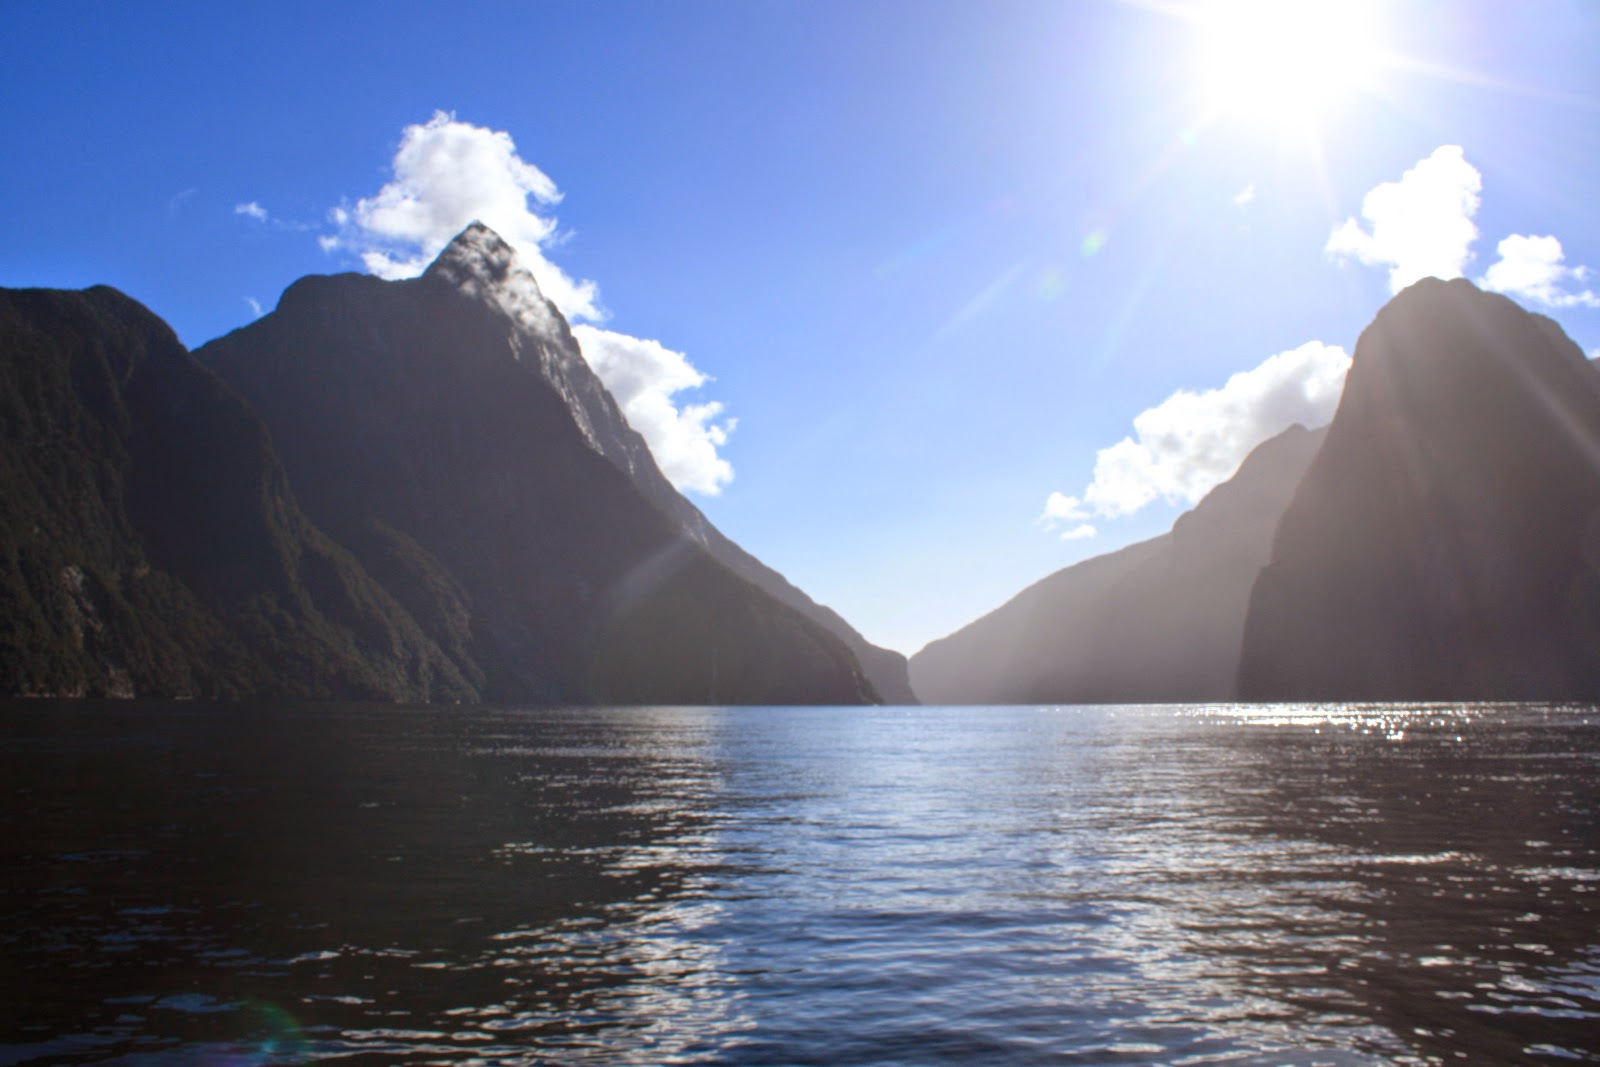 Same damn photo of Milford Sound. Hills and water.